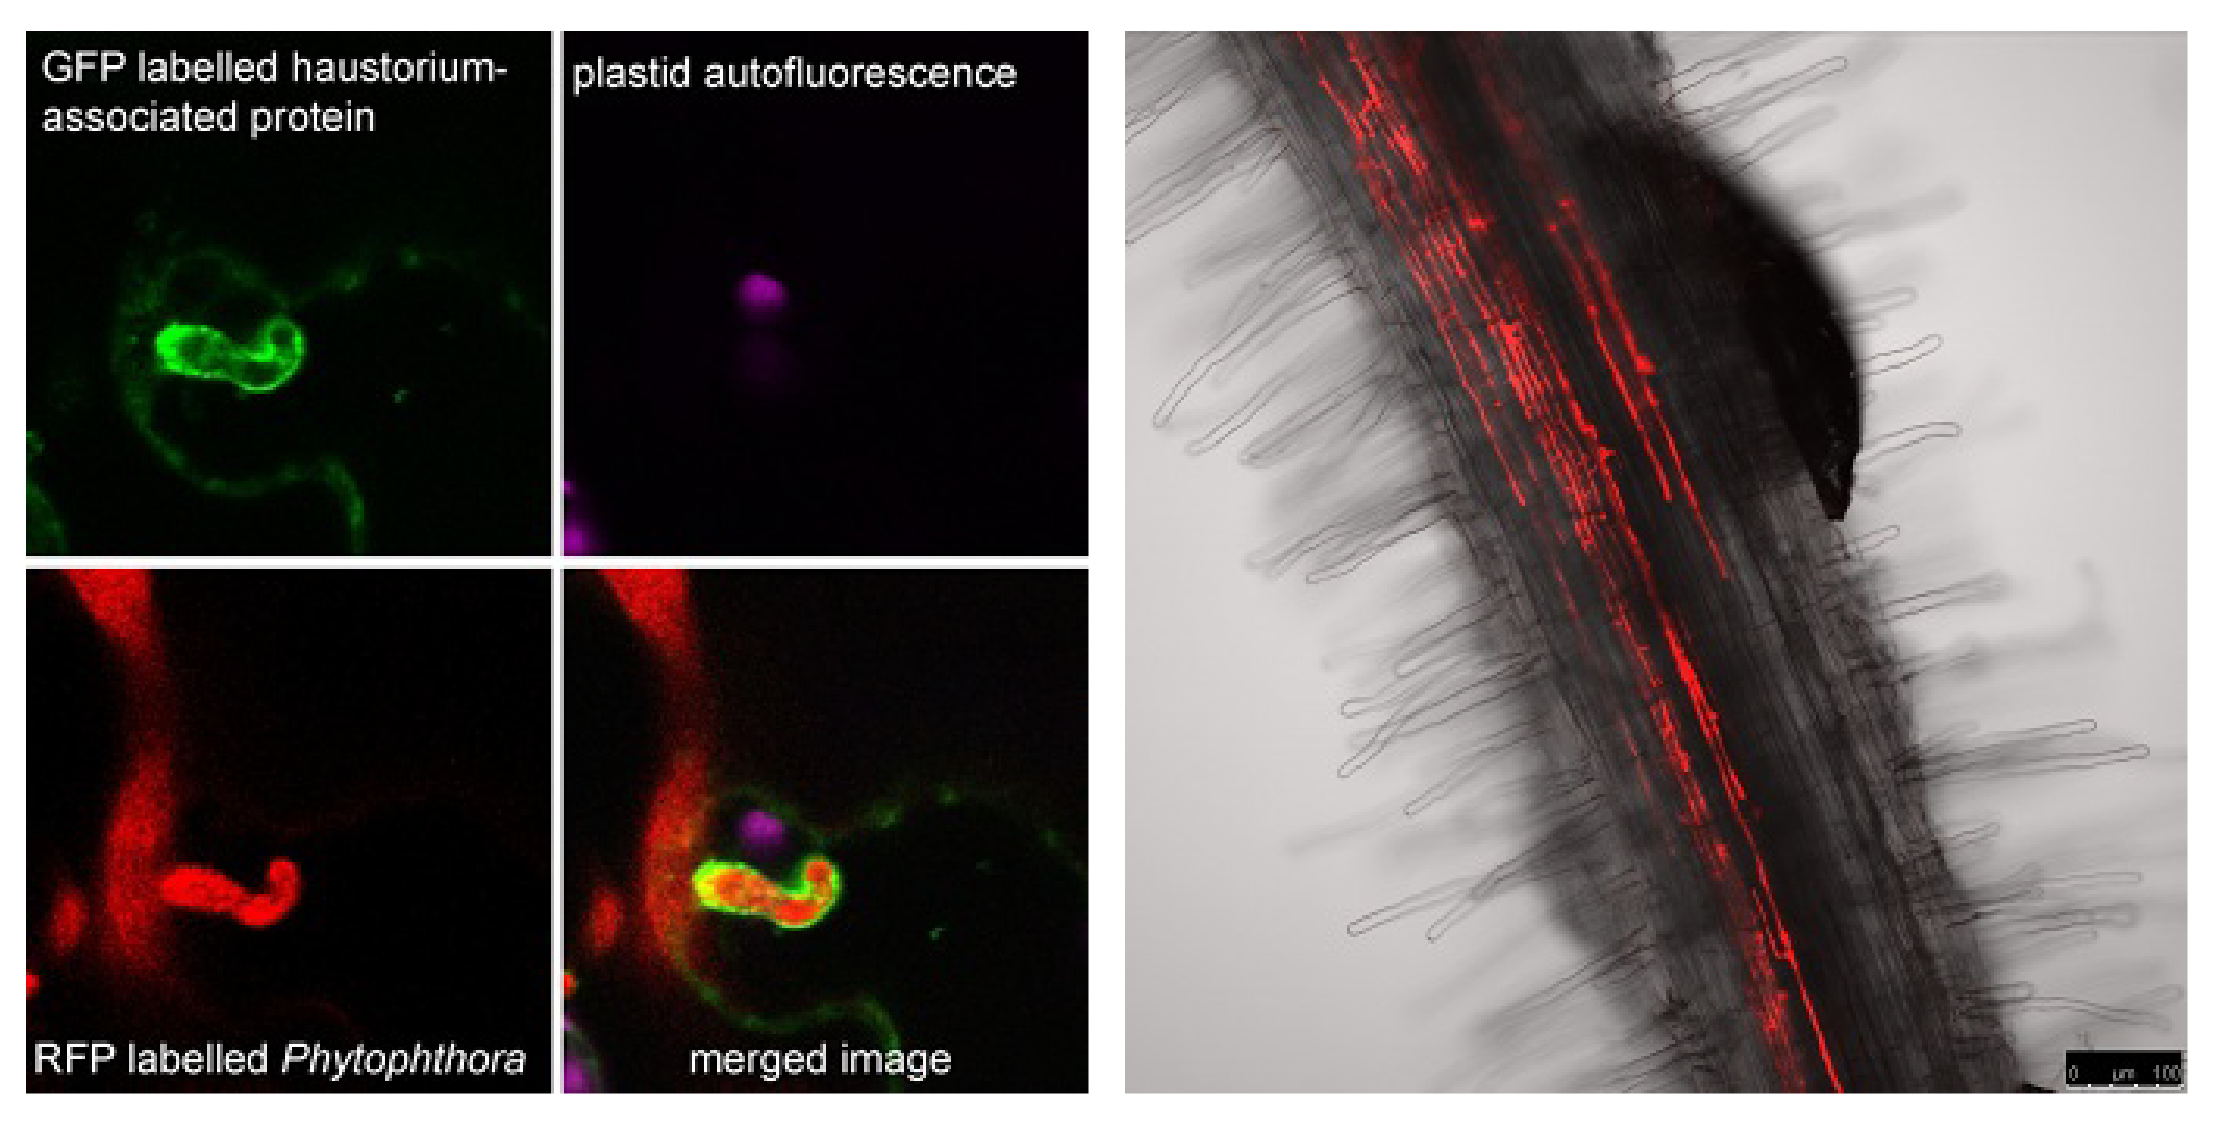 Image 1: Red fluorescent Phytophthora colonising a Medicago truncatula (barrel medic) root. Image 2: A GFP-labelled protein functions at Phytophthora haustoria structures.